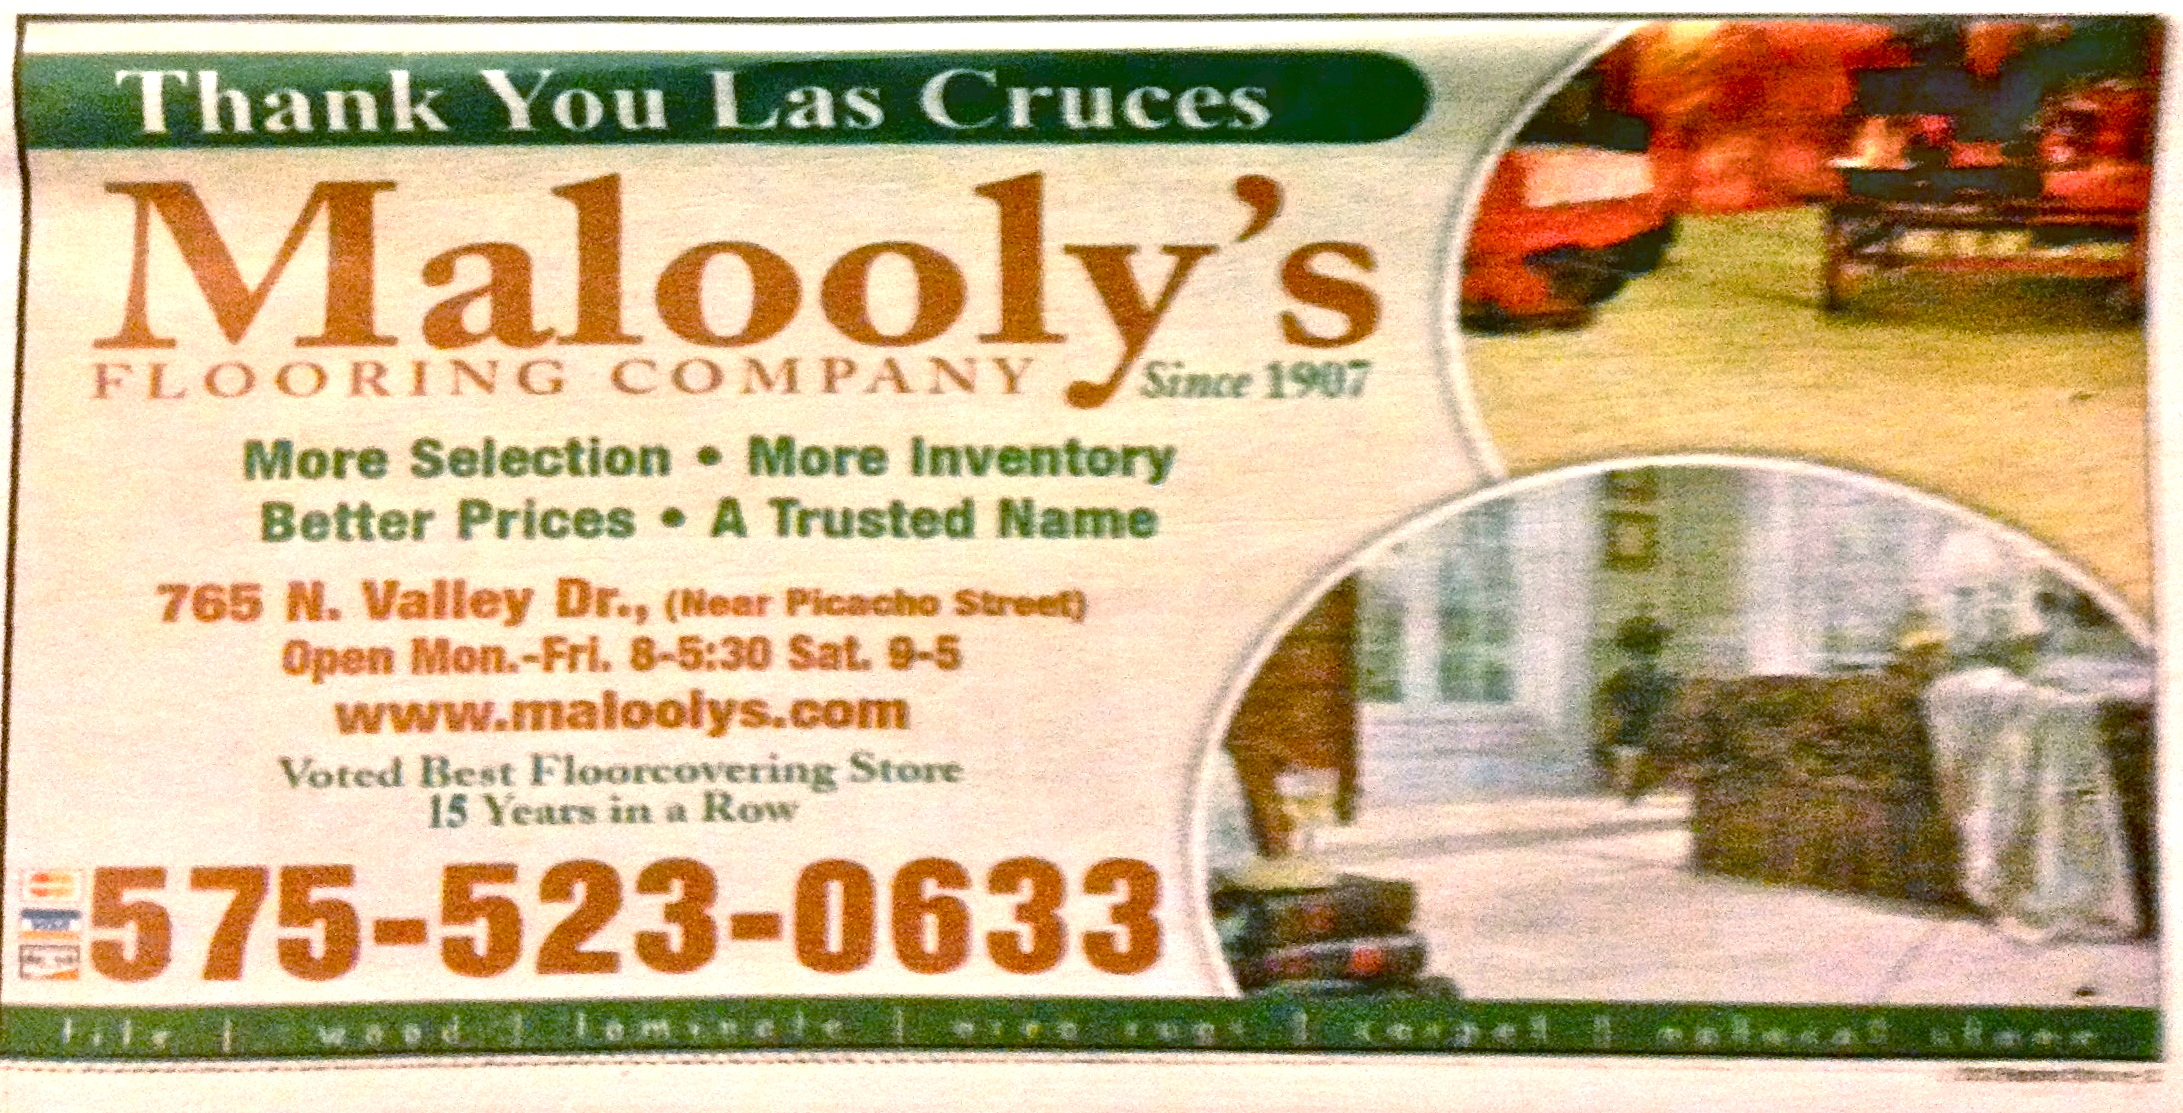 Thank you Maloolys ad